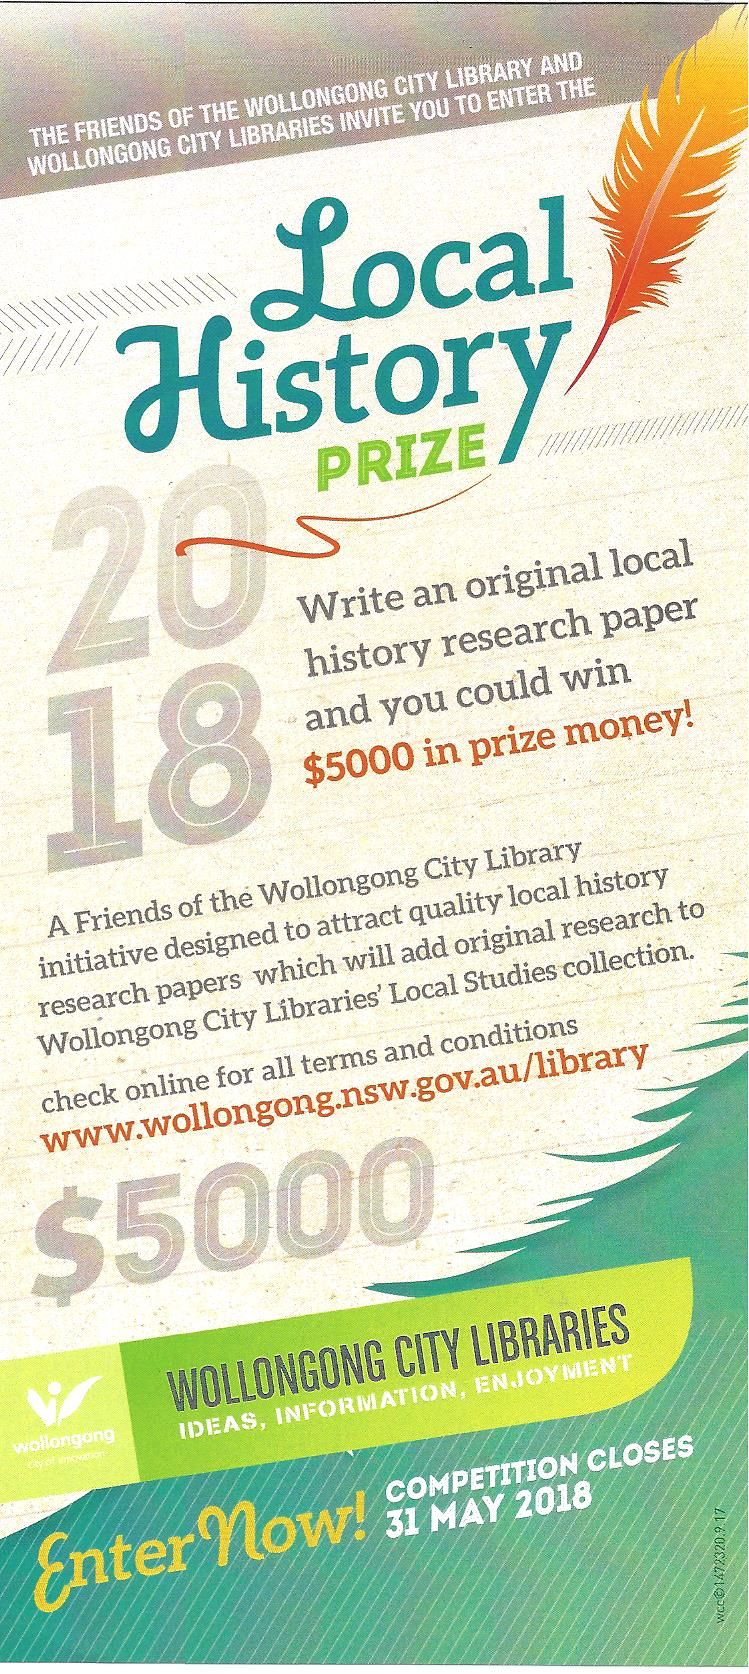 LOCAL HISTORY PRIZE - $5,000 - Sponsored by Friends of Wollongong City Library for an original research paper relating to the history of the City of Wollongong LGA.  Competition closes 31 May 2018